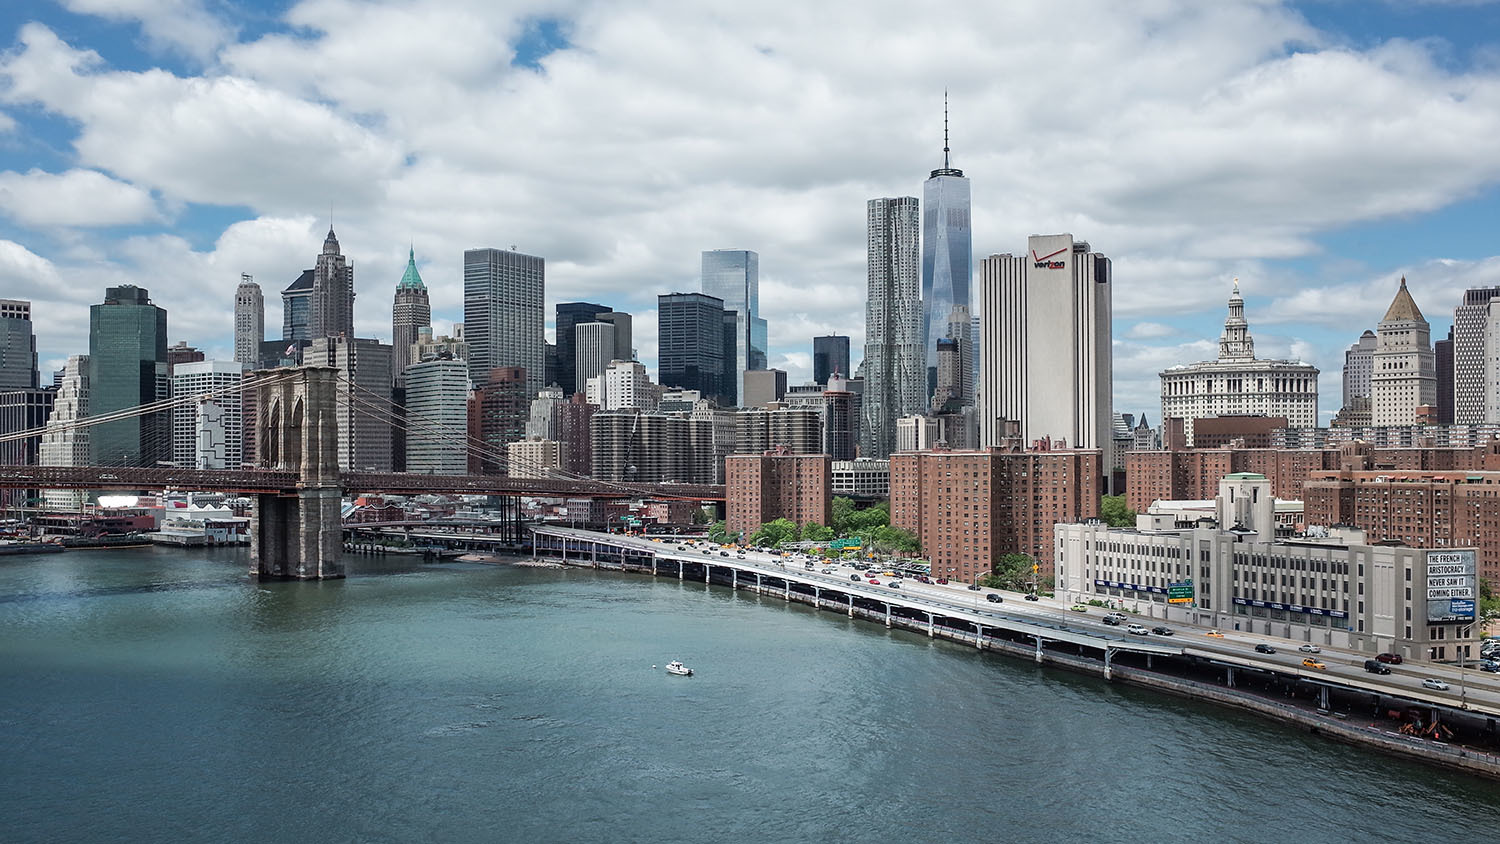 Best Buildings To Look At Nyc Skyline